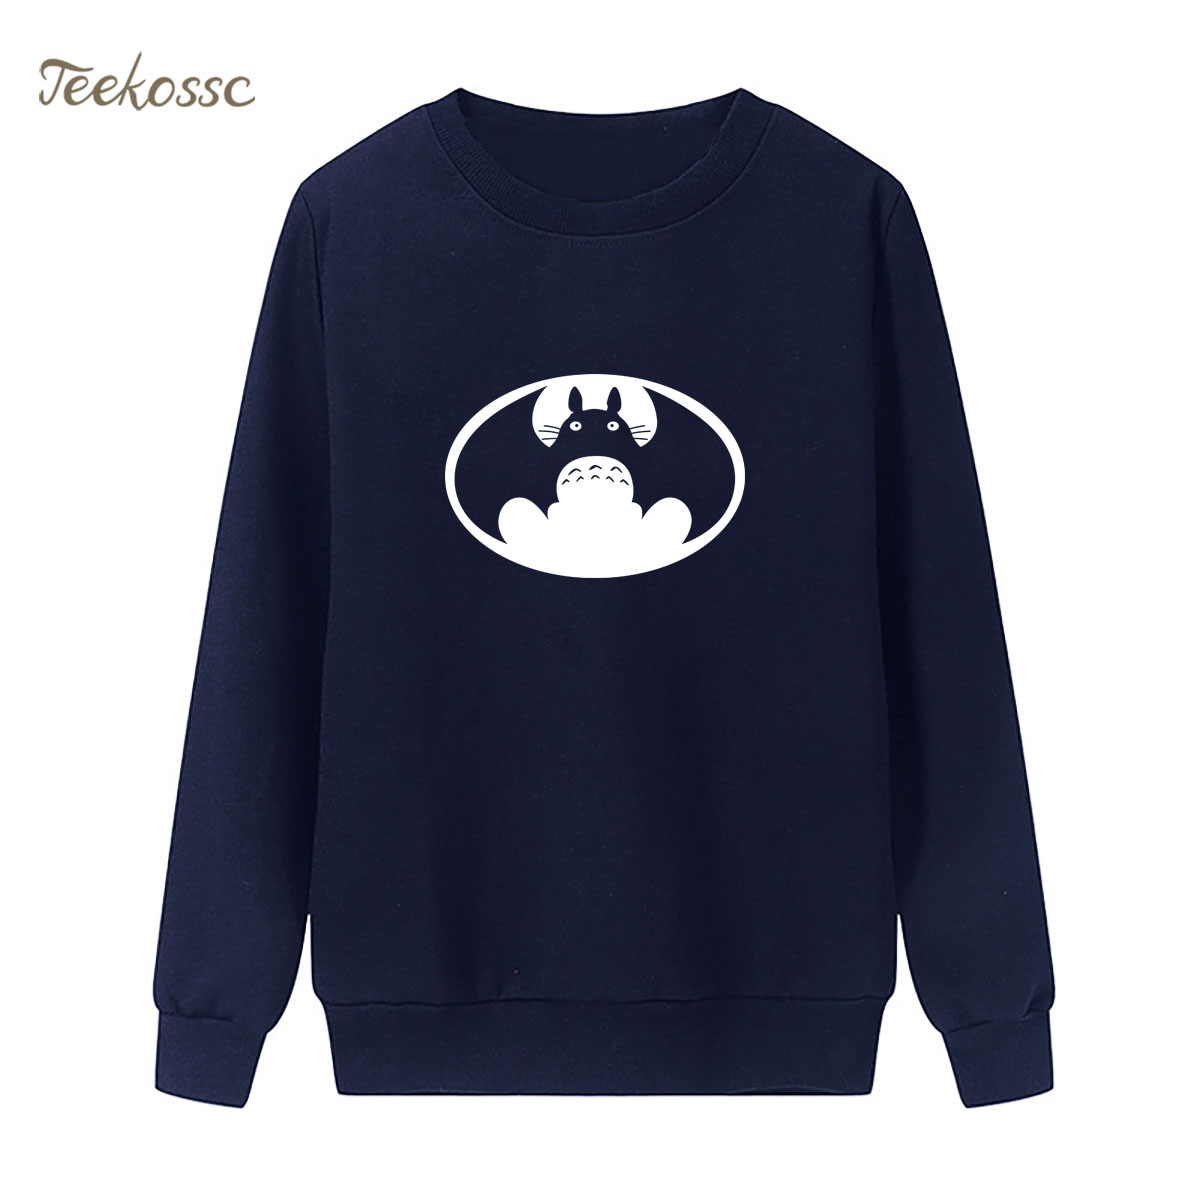 My Neighbor Totoro Batman Sweatshirt Super Hero Hoodie 2018 Winter Autumn Women Lasdies Pullover Fleece Loose Cartoon Streetwear